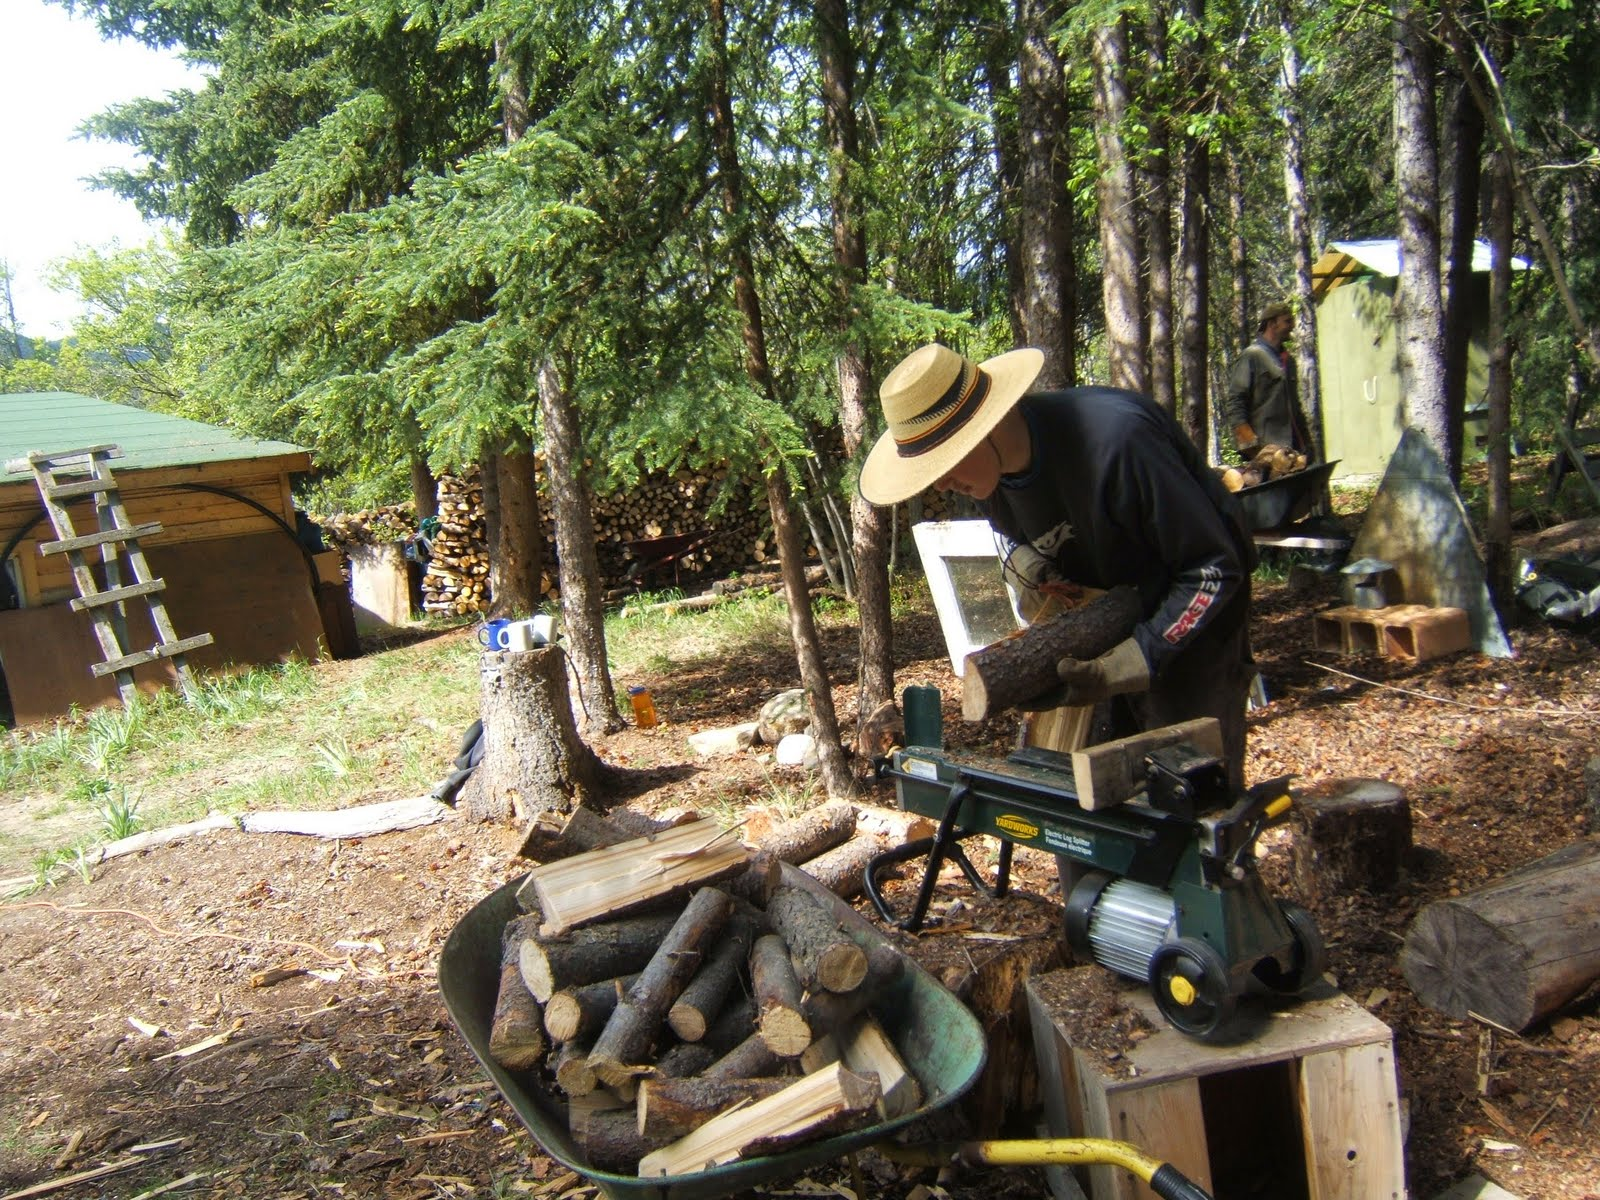 setting up retreatant with firewood